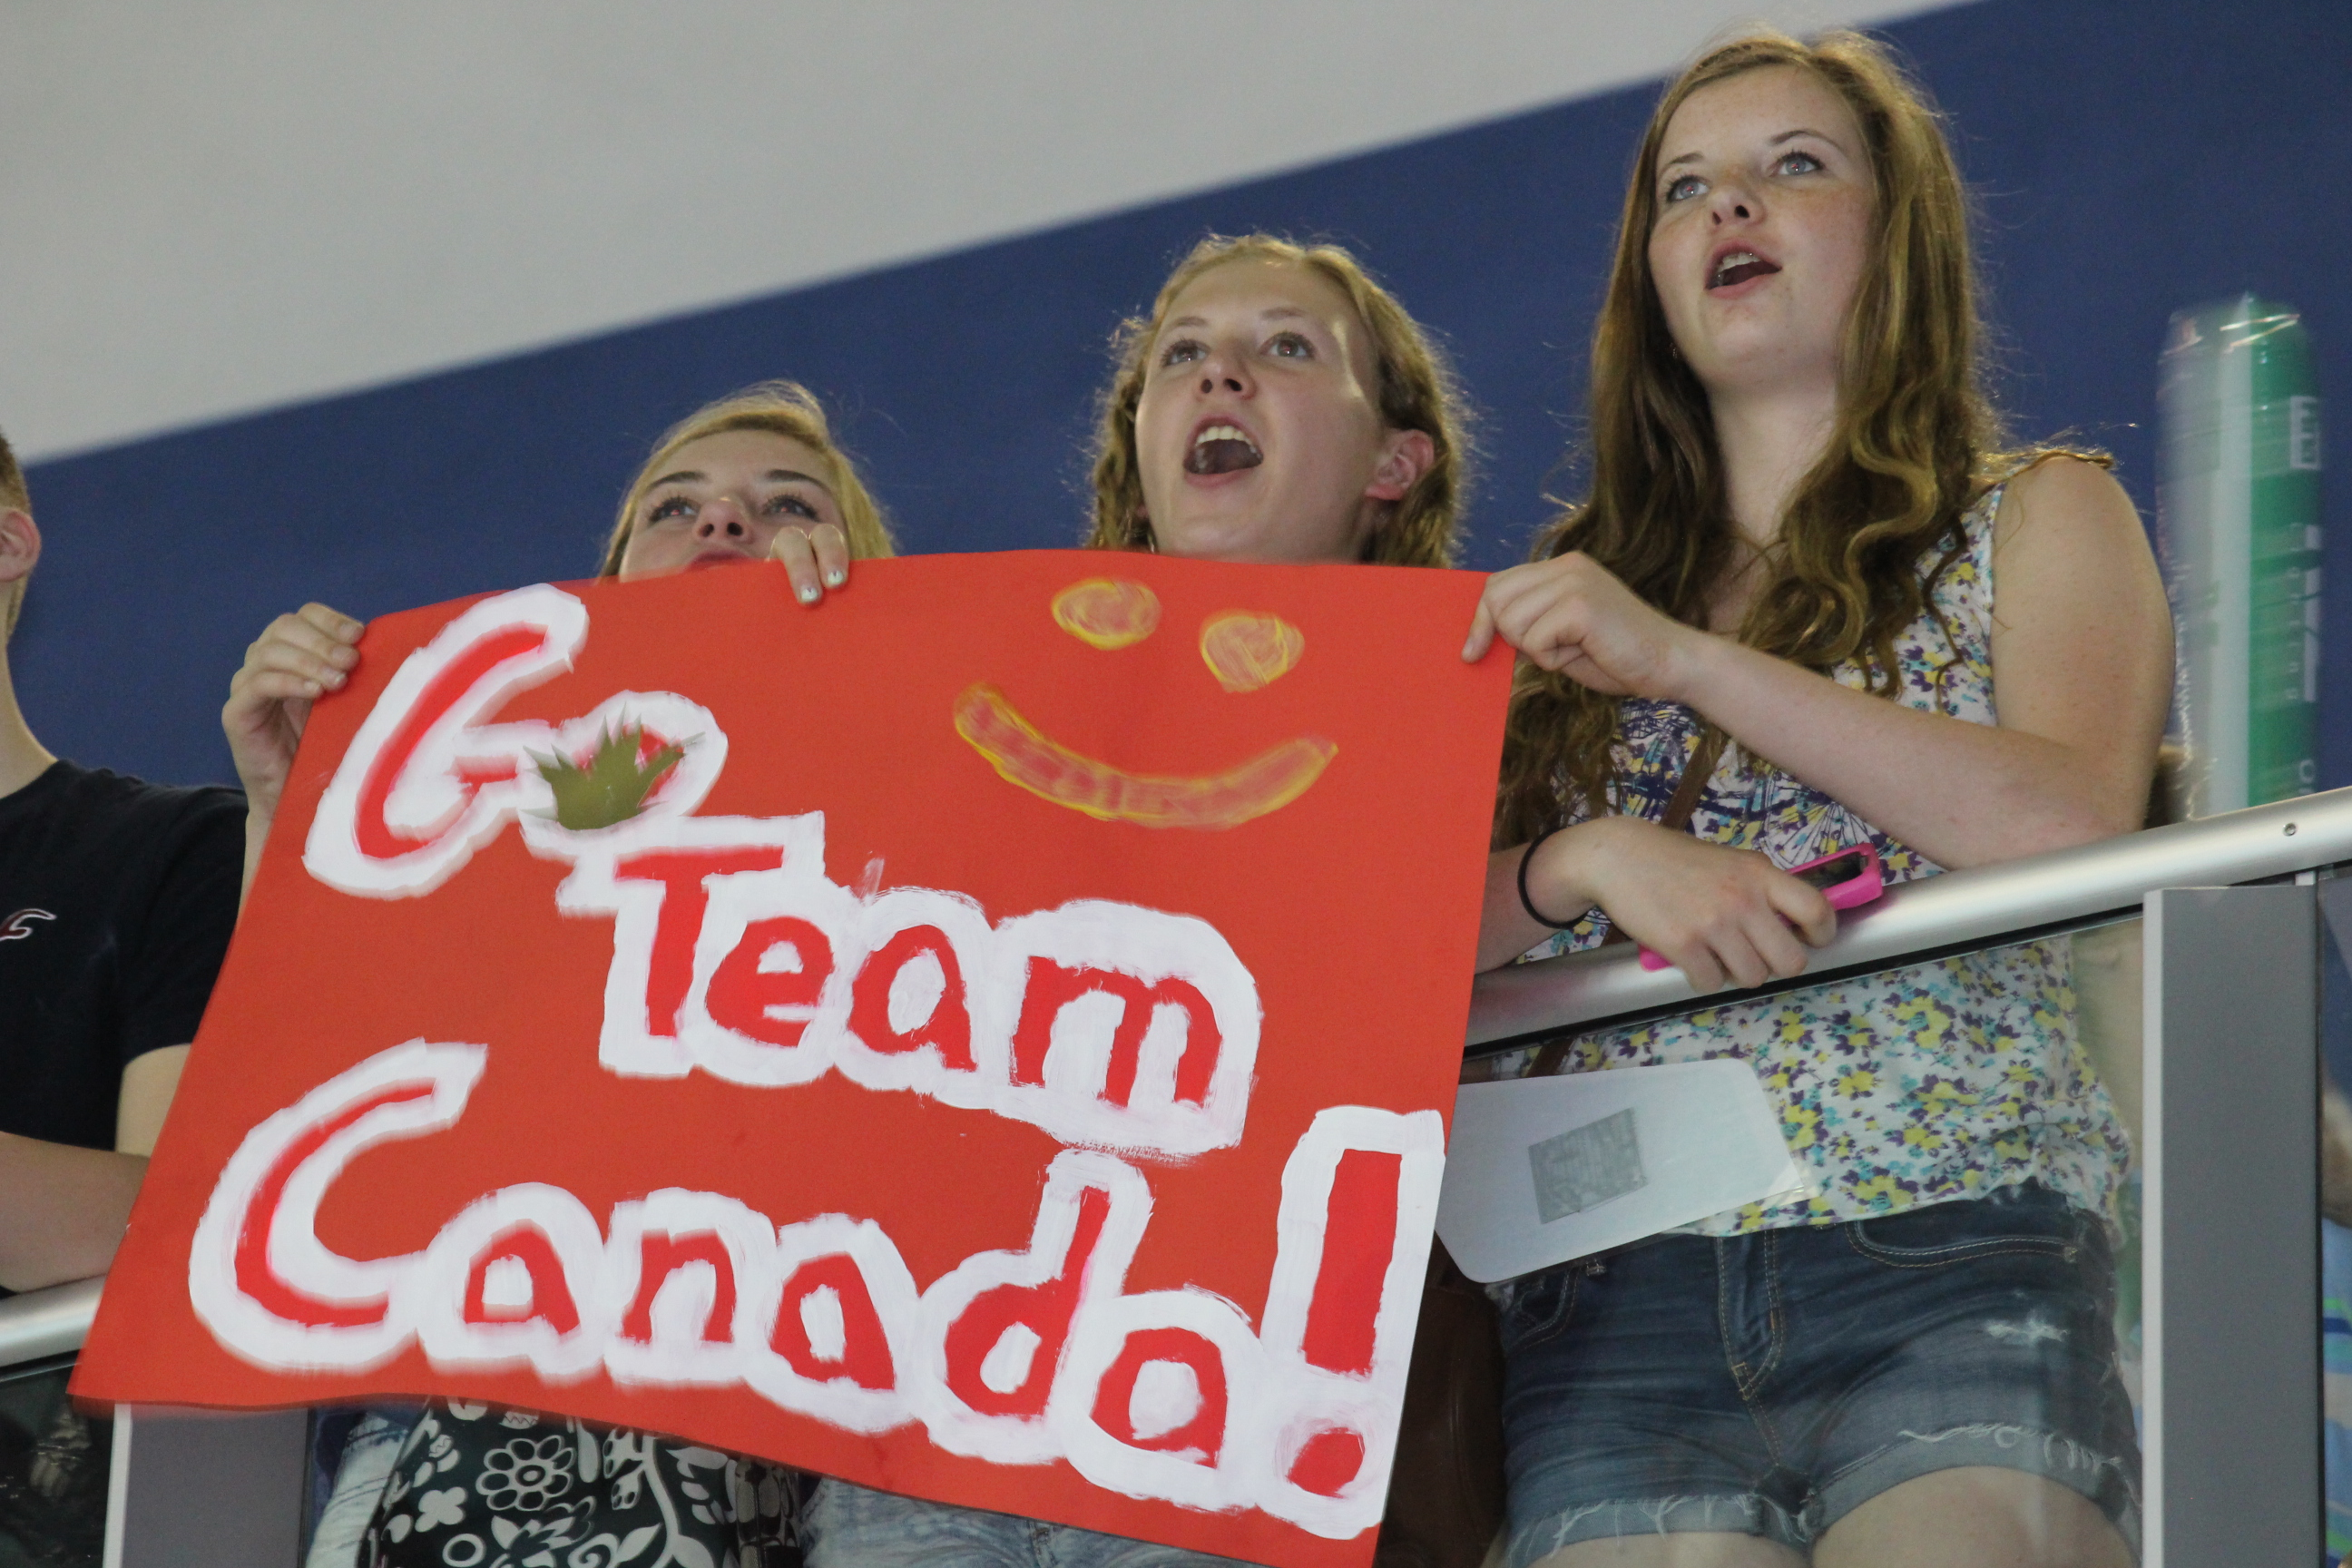 Fans at the FINA World Diving Series event in Windsor on June 1, 2014. (Photo by Ricardo Veneza)